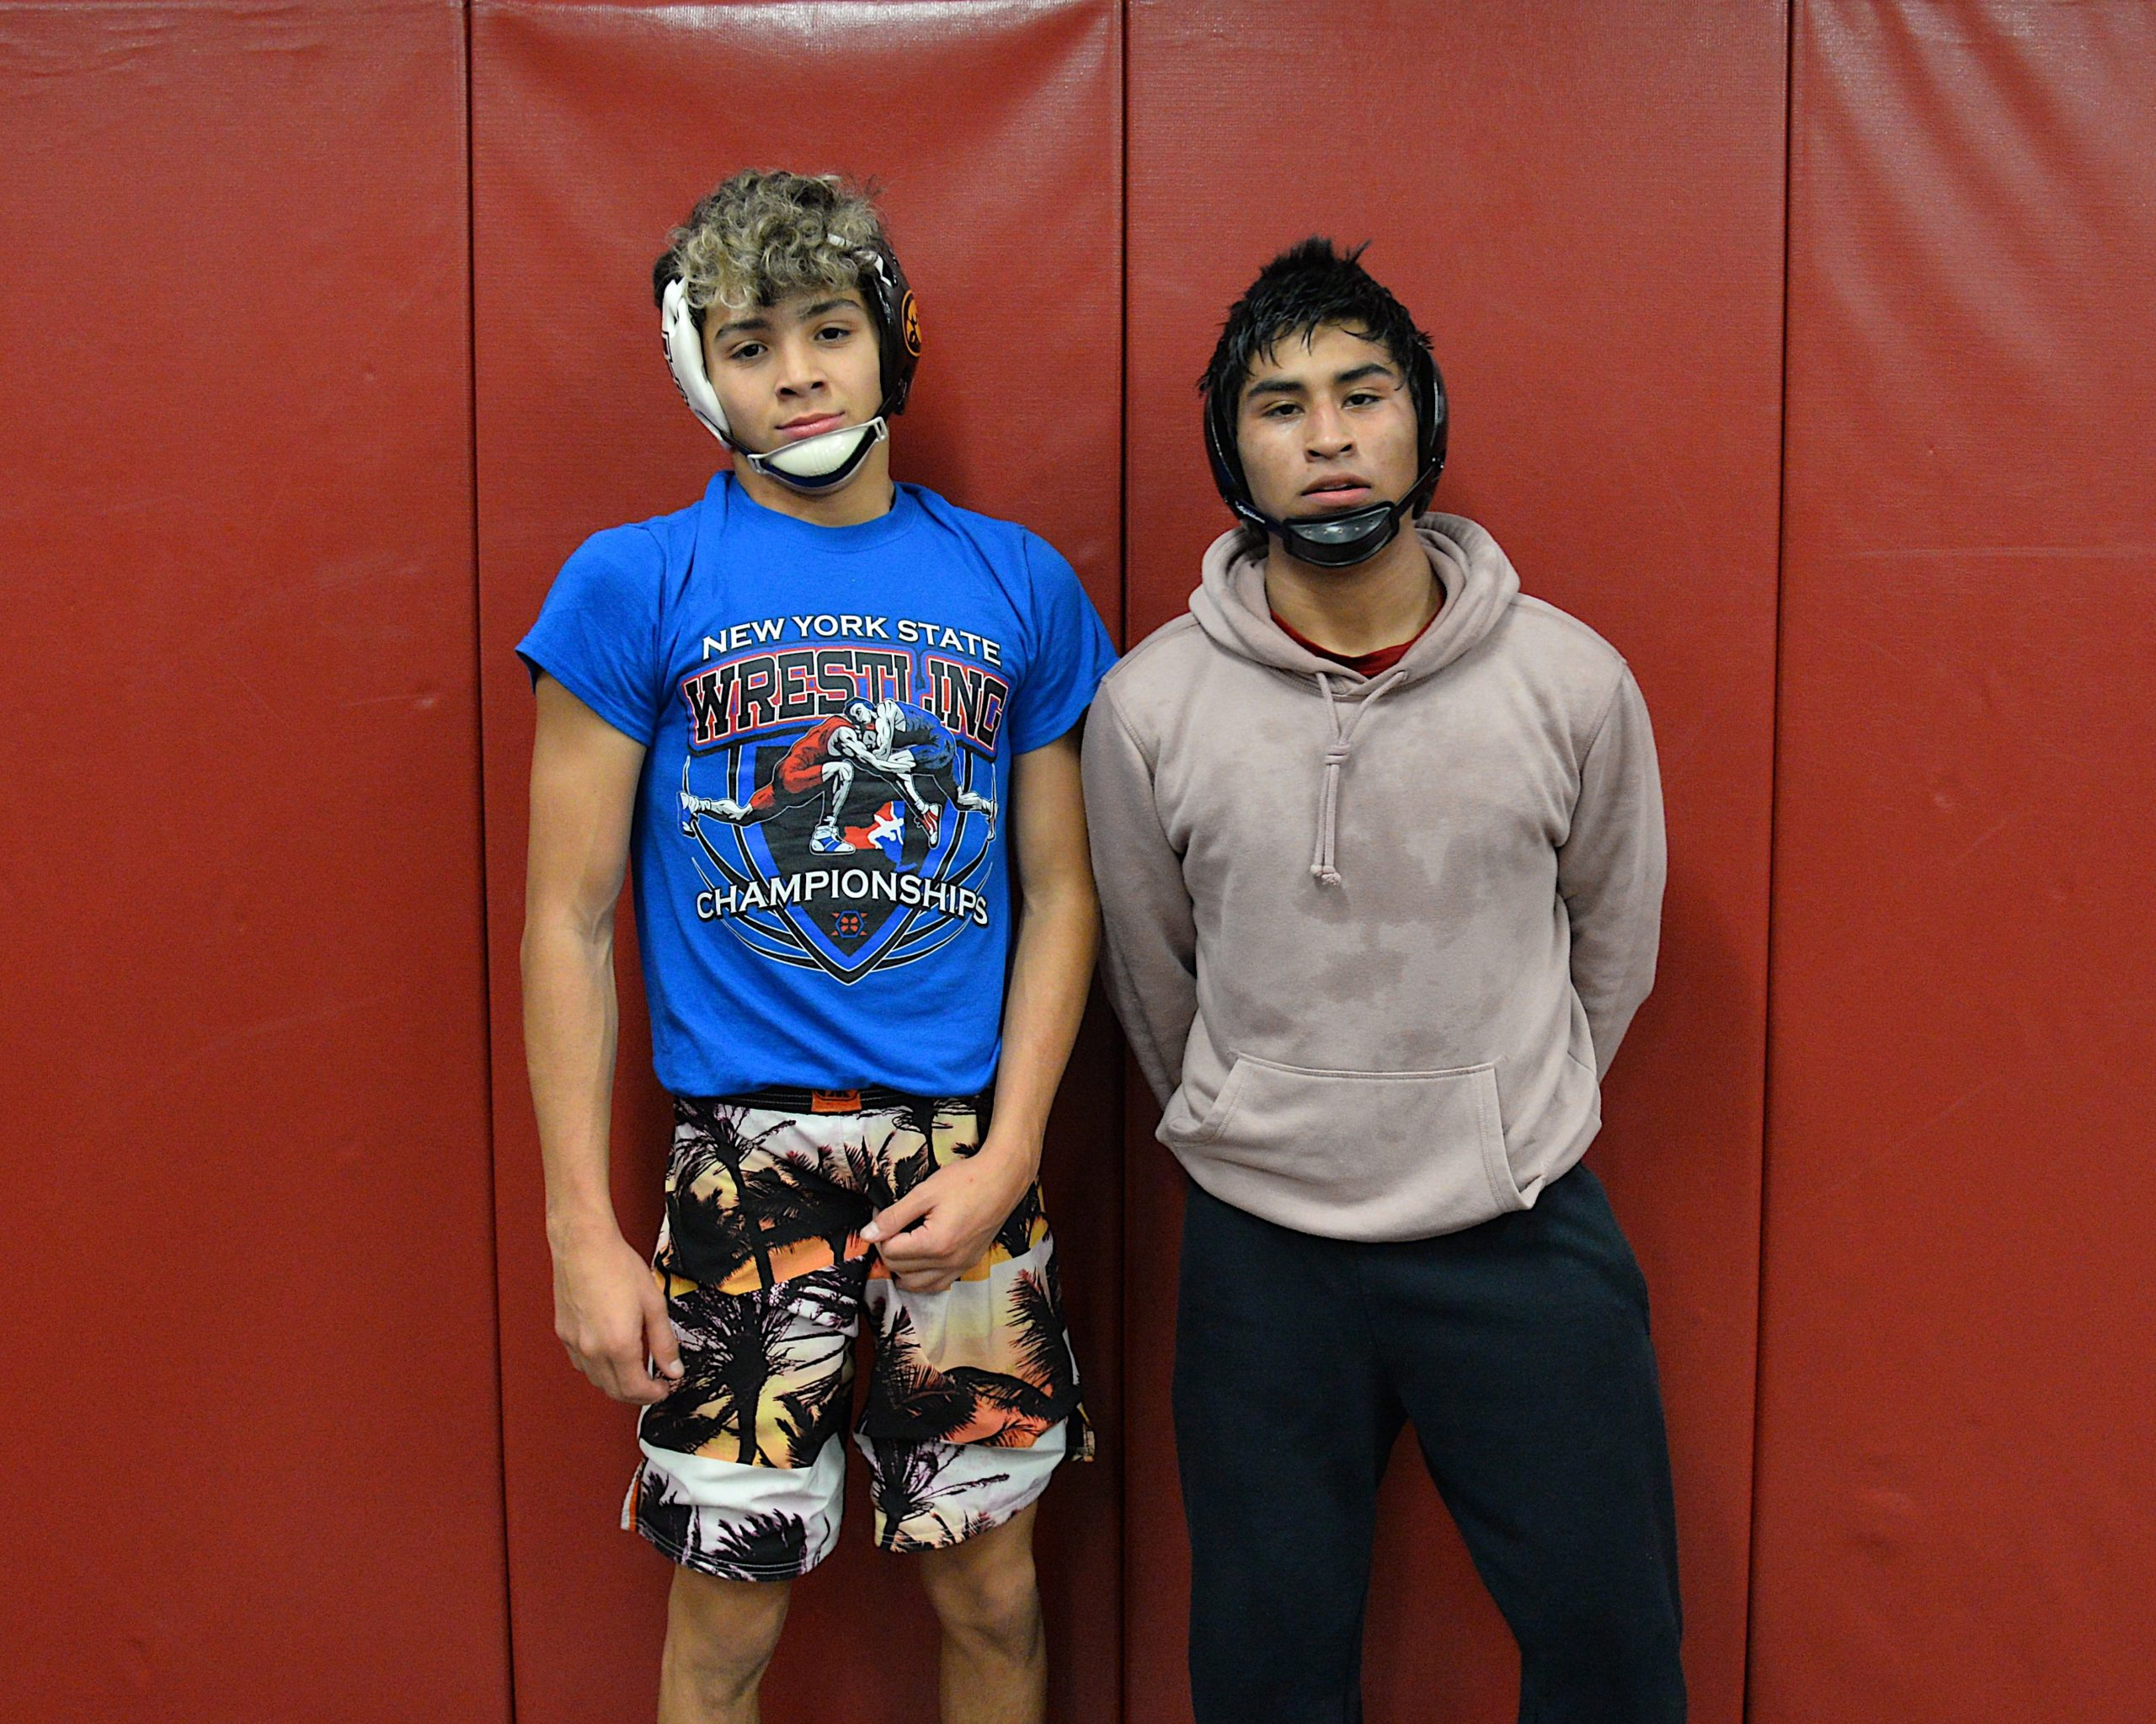 Returning sophomores Santi Maya, left, and Caleb Peralta will lead the Bonac wrestling team once again this season.